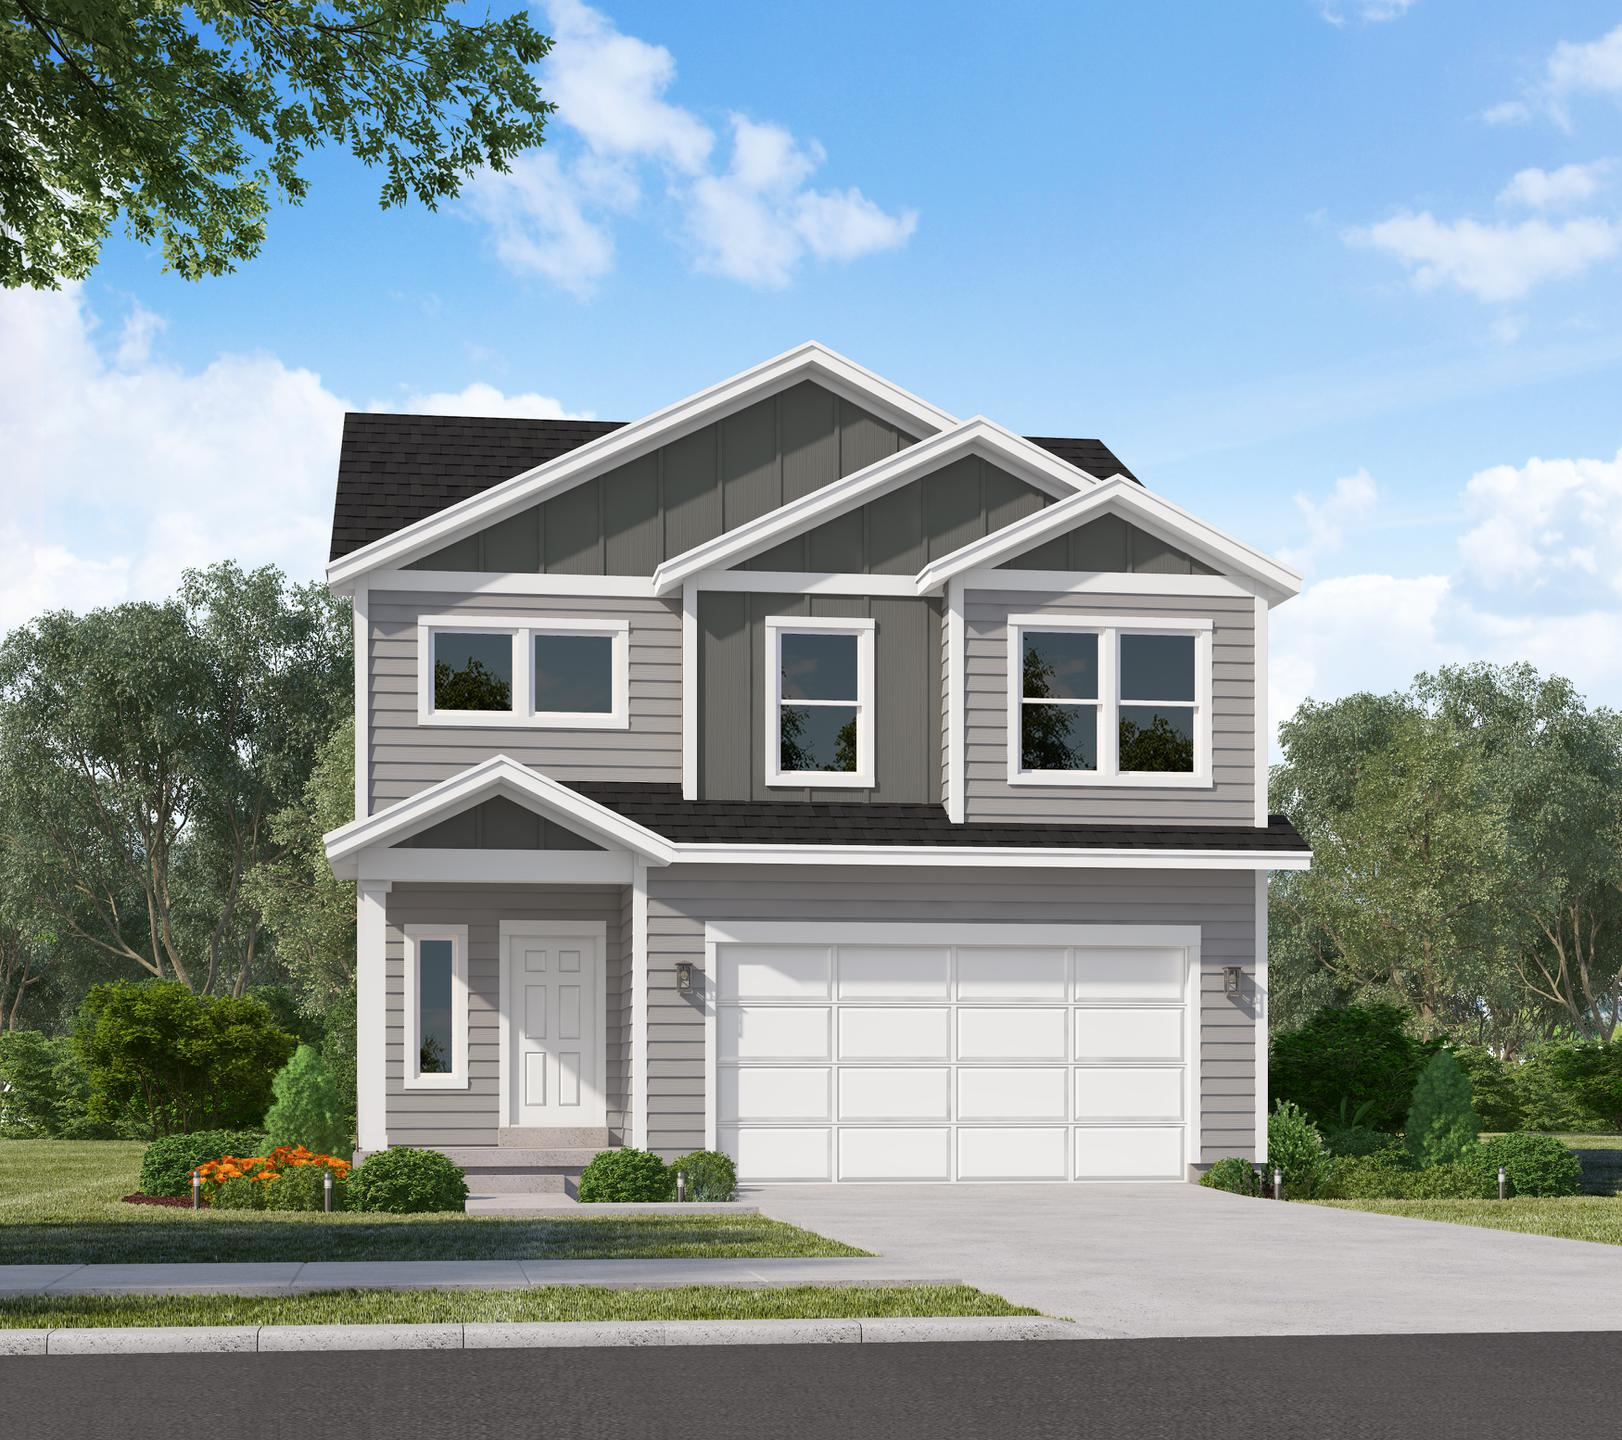 Meadowview new home in Payson, UT